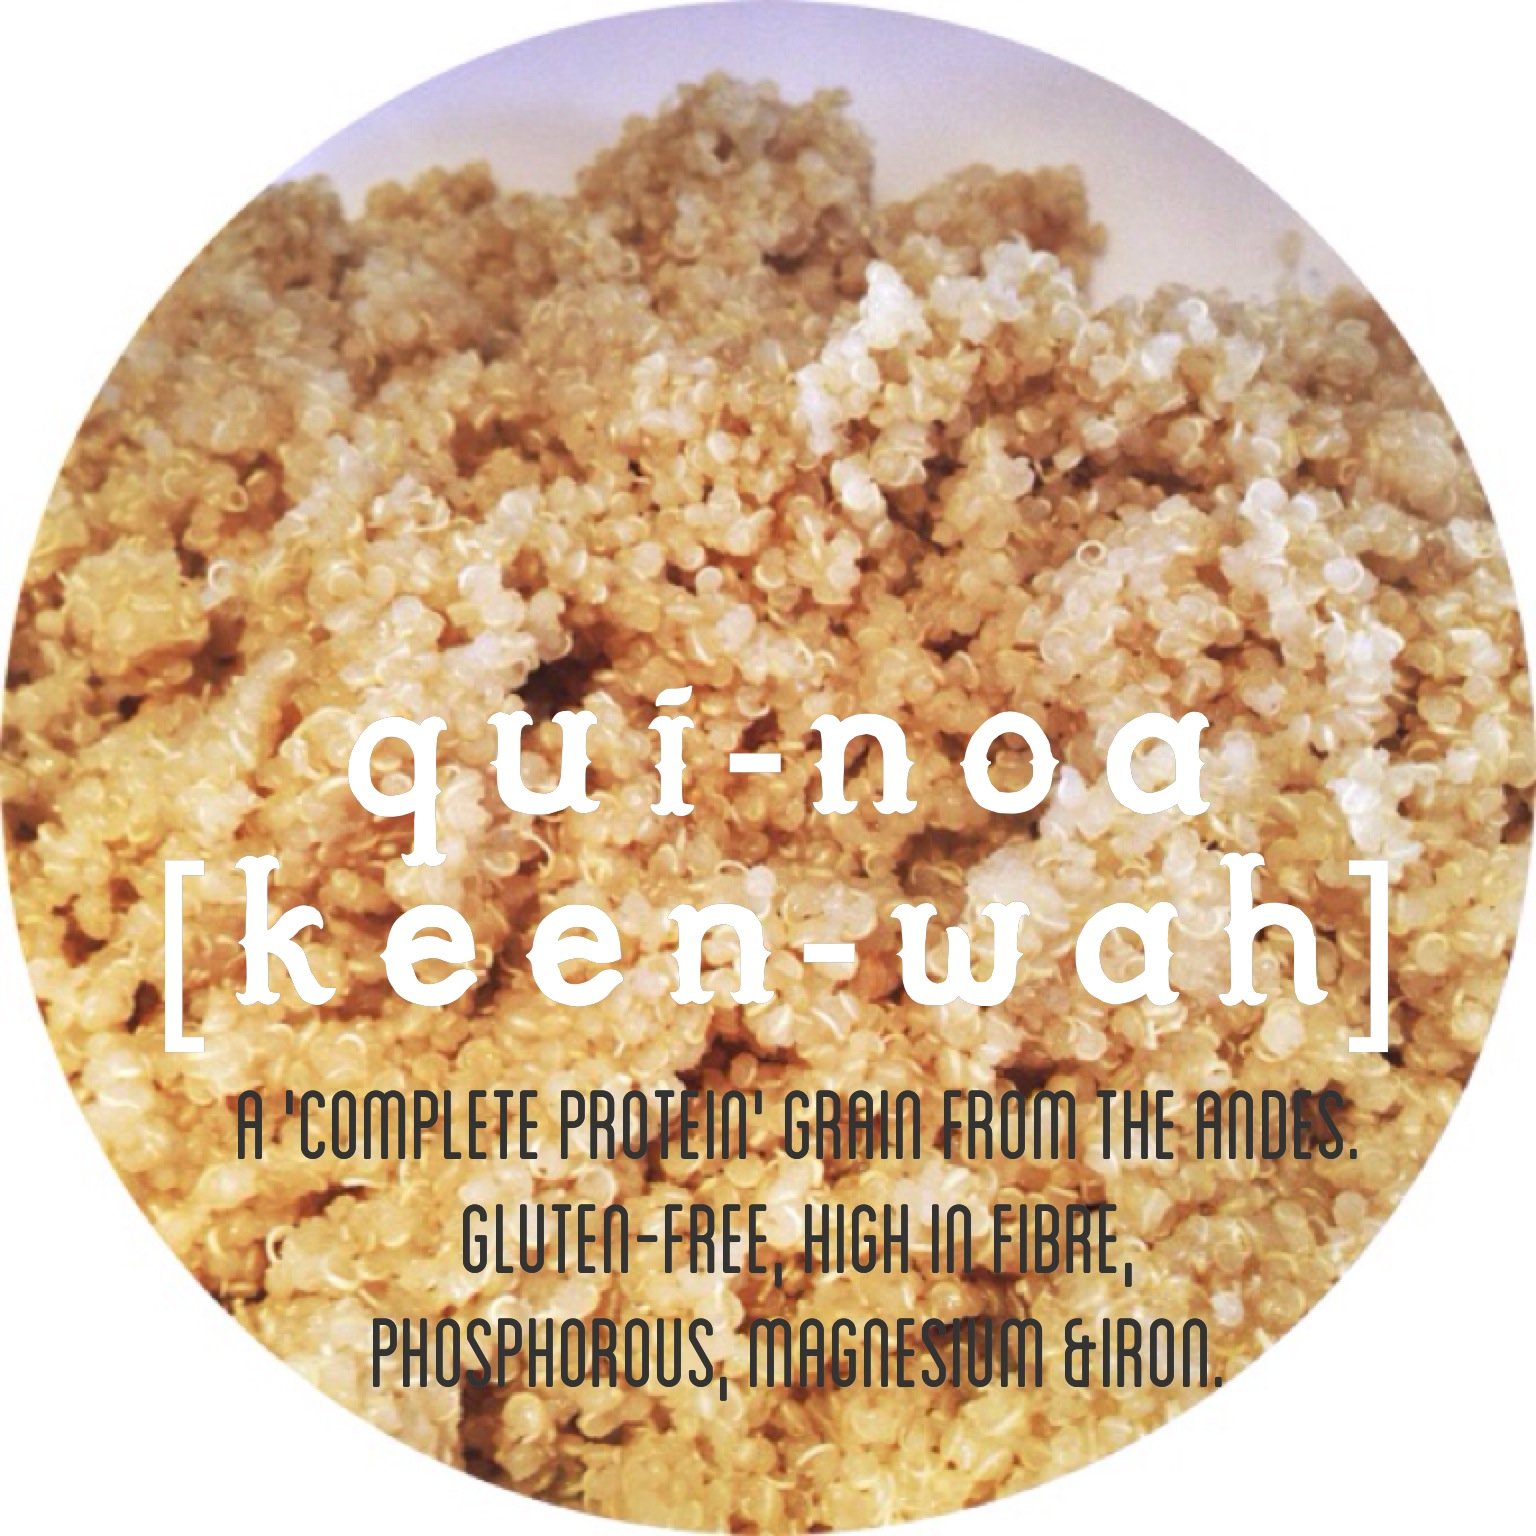 How To Cook Quinoa So It's Light And Fluffy